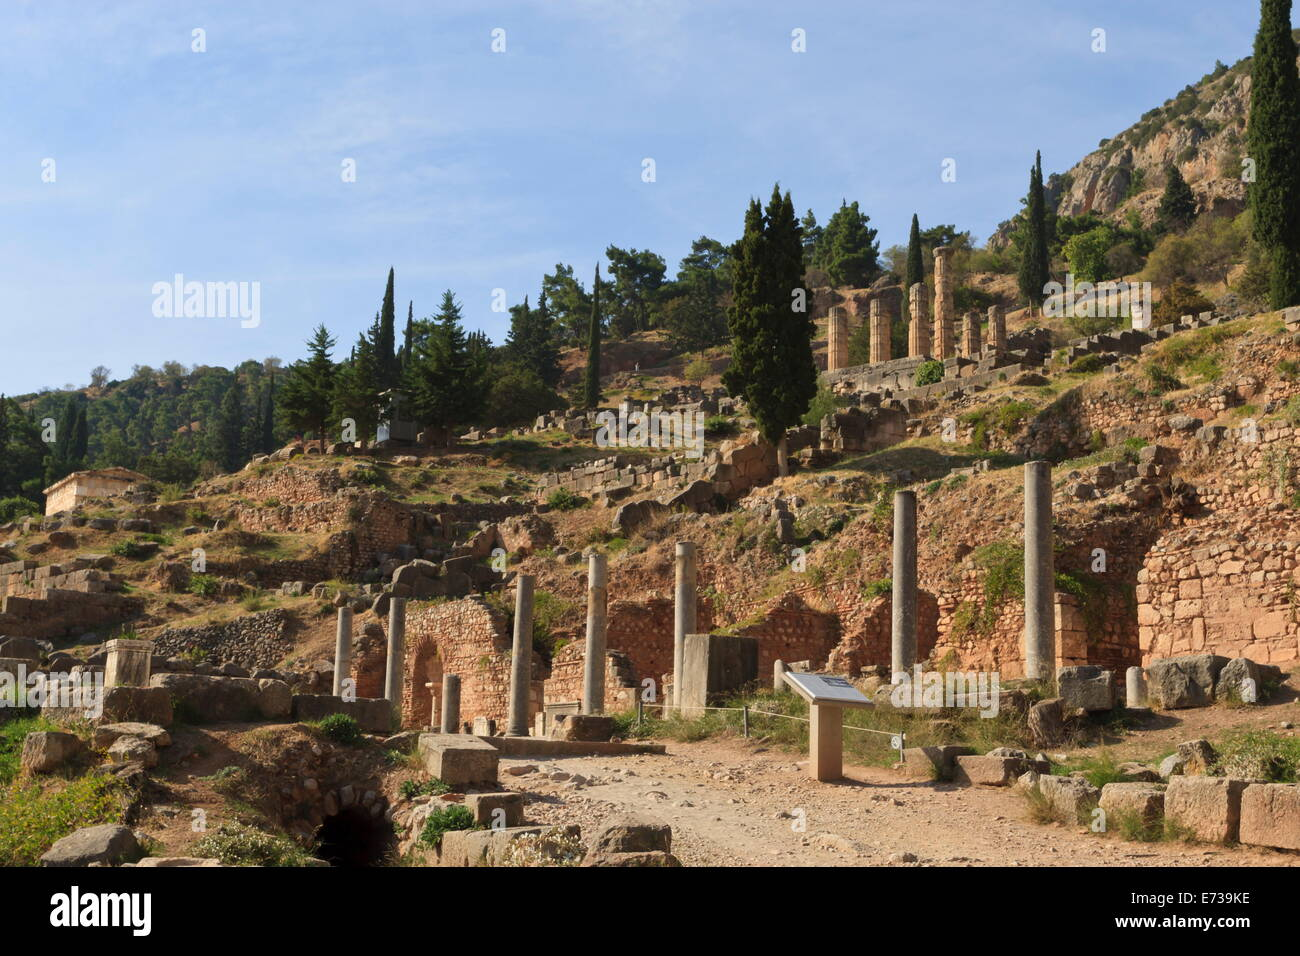 Delphi, UNESCO World Heritage Site, Peloponnese, Greece, Europe Stock Photo